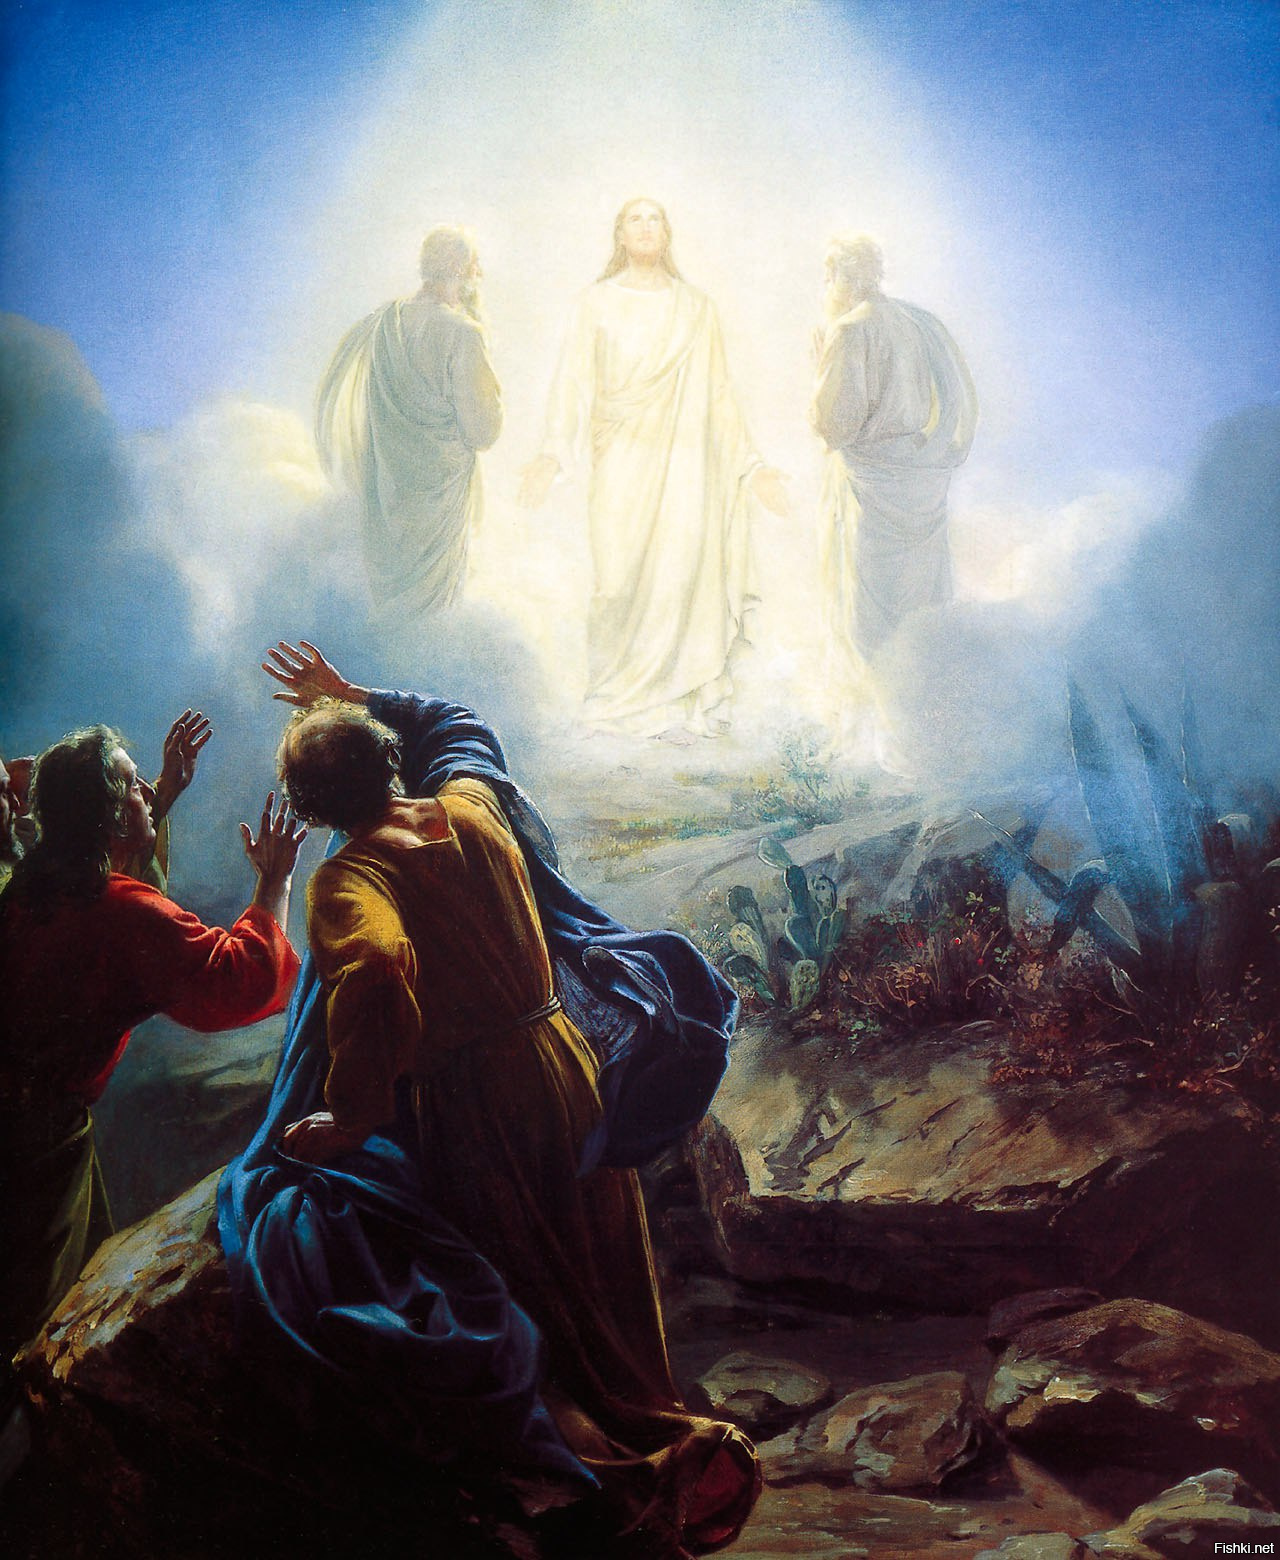 jesus the warrior in the dream of As a warrior jesus said that he had come to bring the sword recall his attack on the money-changers in the temple, his fierce criticisms of the pharisees-all warrior behaviors of course the primary battle that jesus led was a spiritual battle.